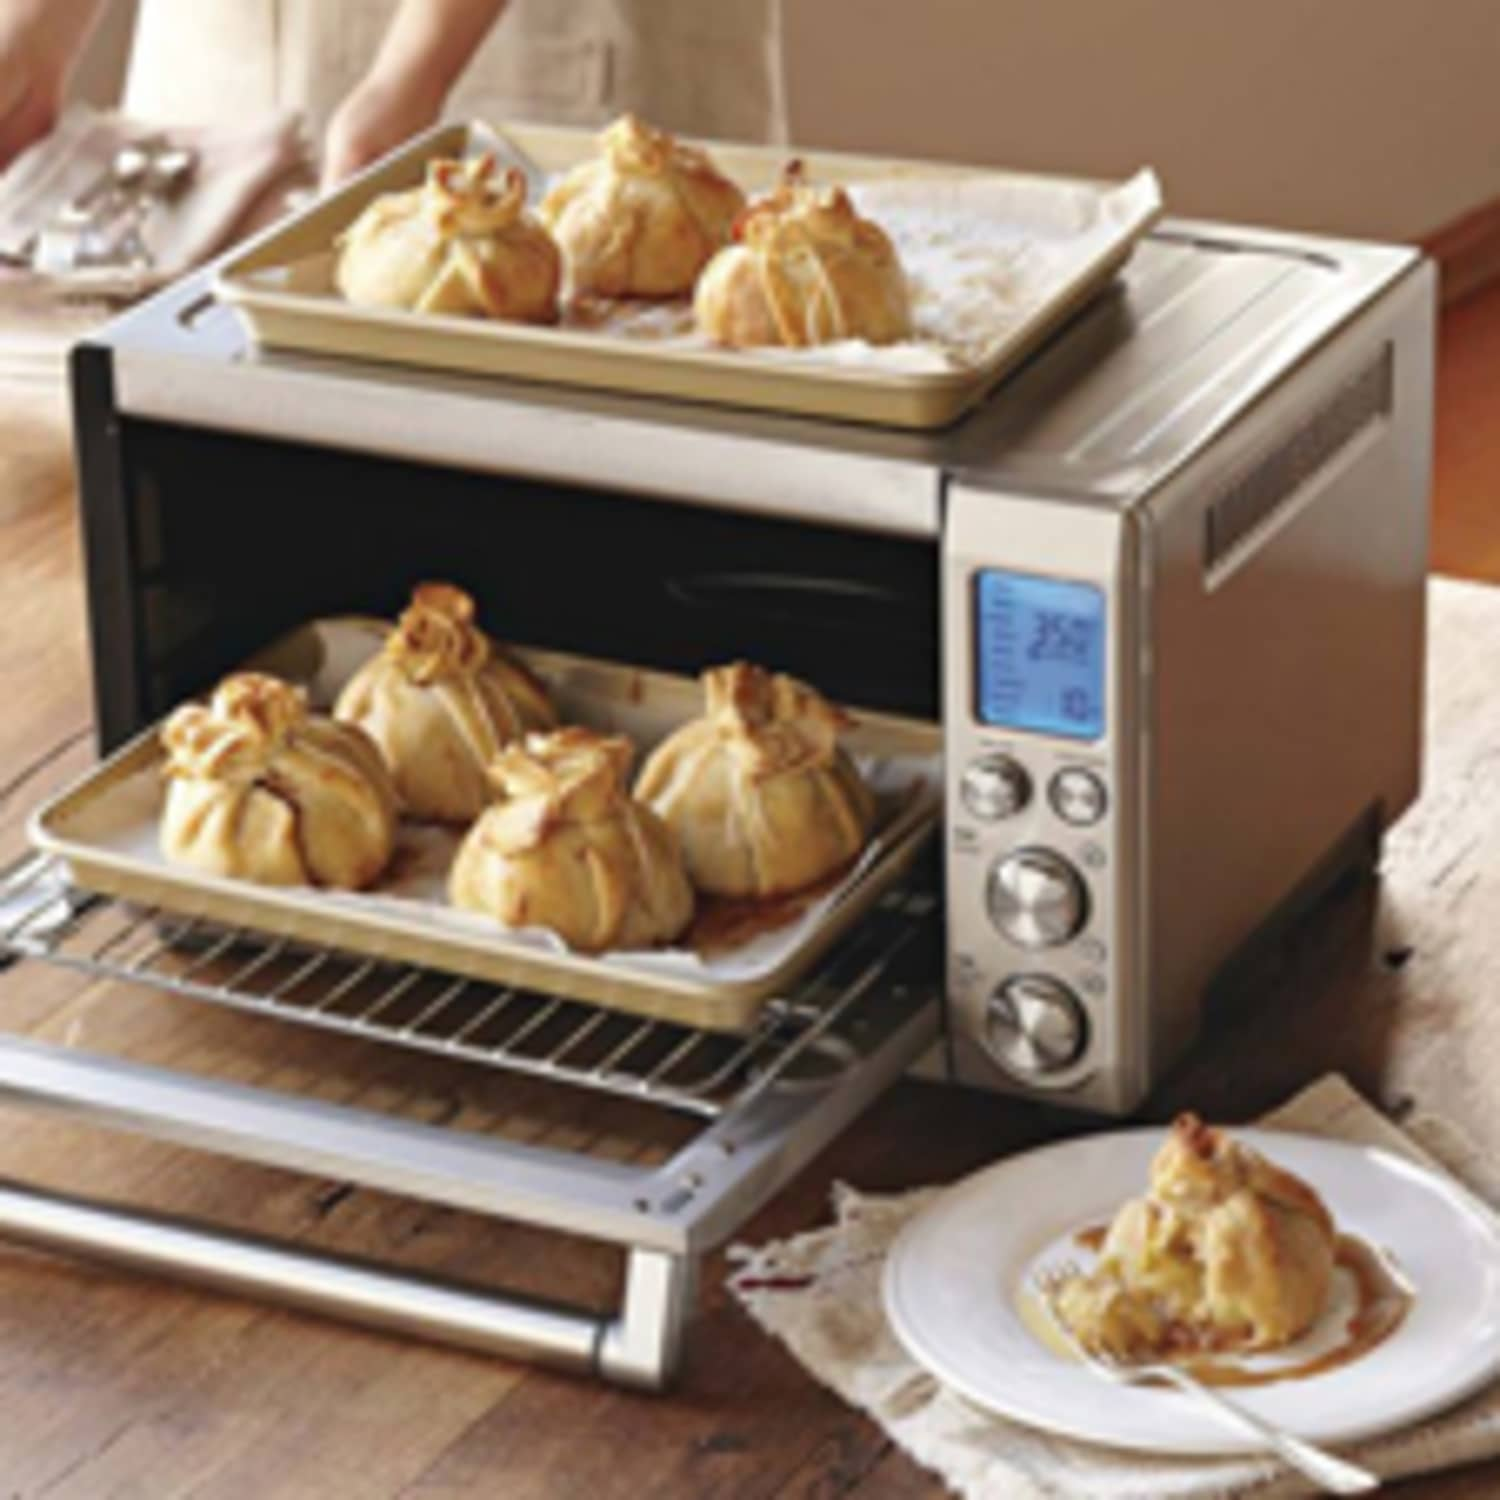 Find Me An Apartment: Help Me Find A Built-In Toaster Oven?